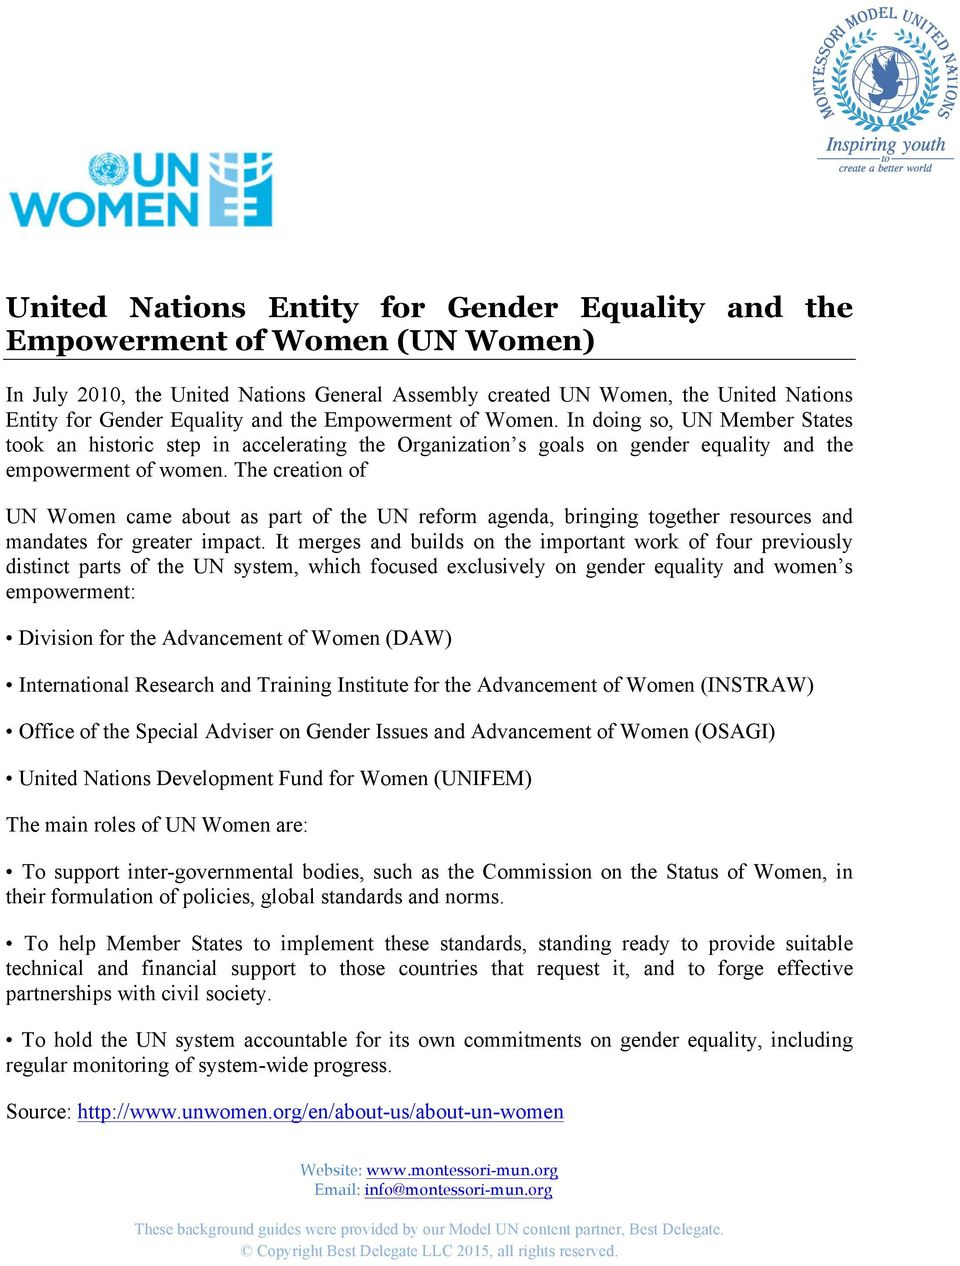 The creation of UN Women came about as part of the UN reform agenda, bringing together resources and mandates for greater impact.